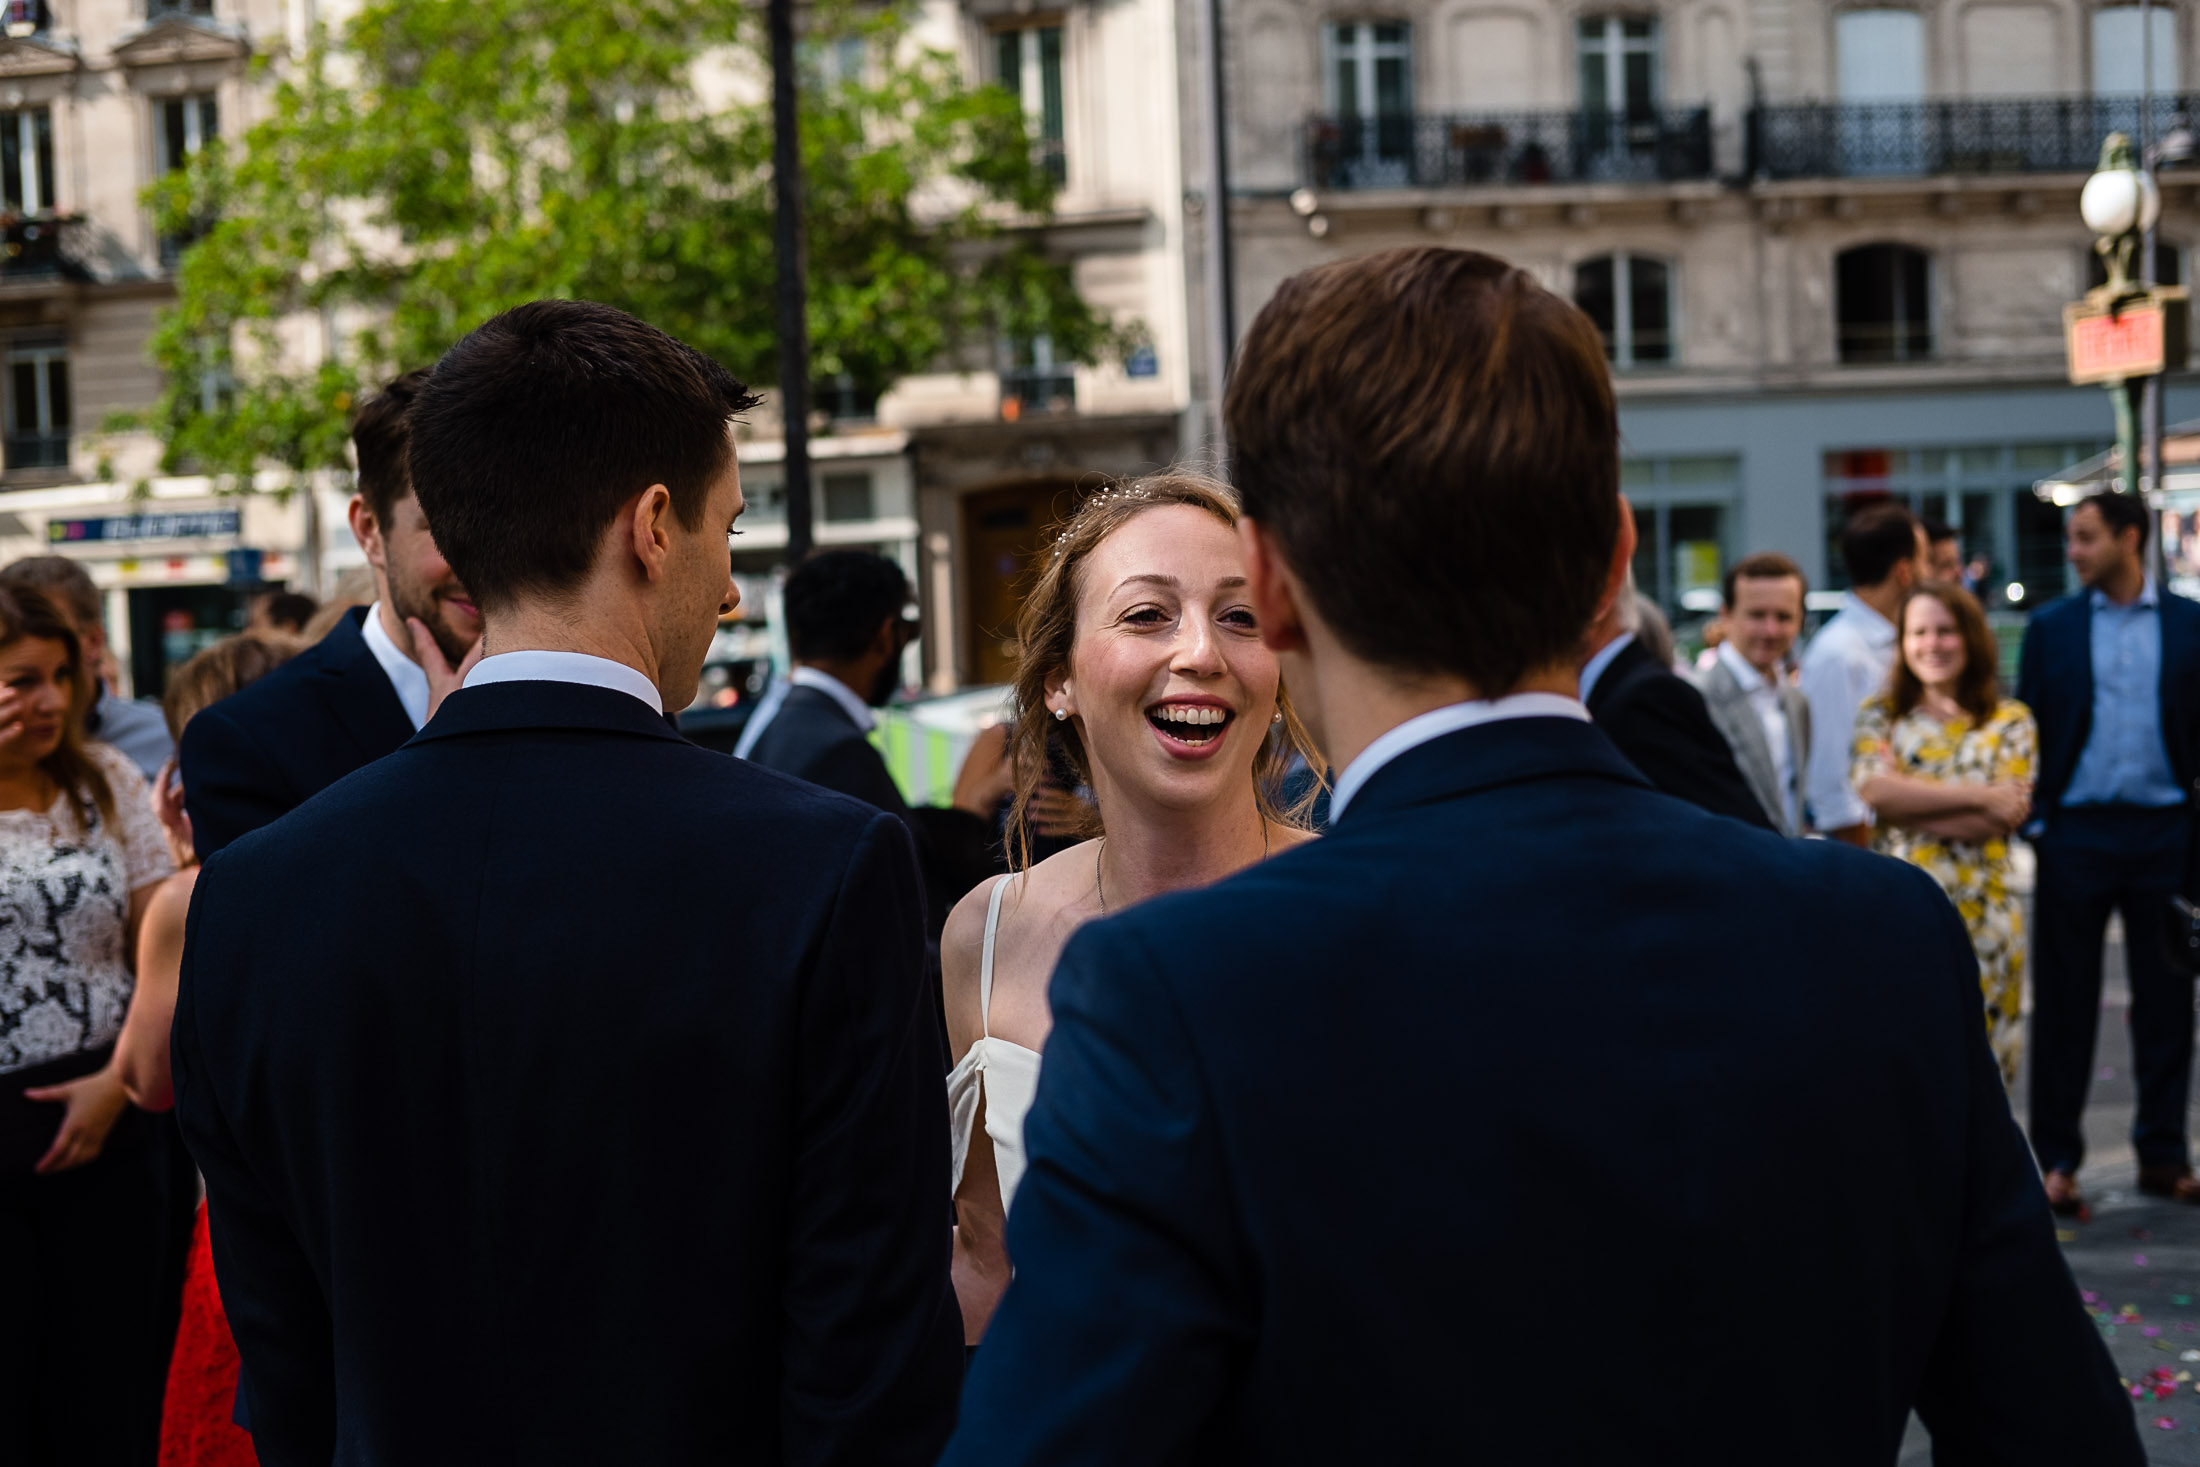 destination_wedding_photographer_paris-19.jpg